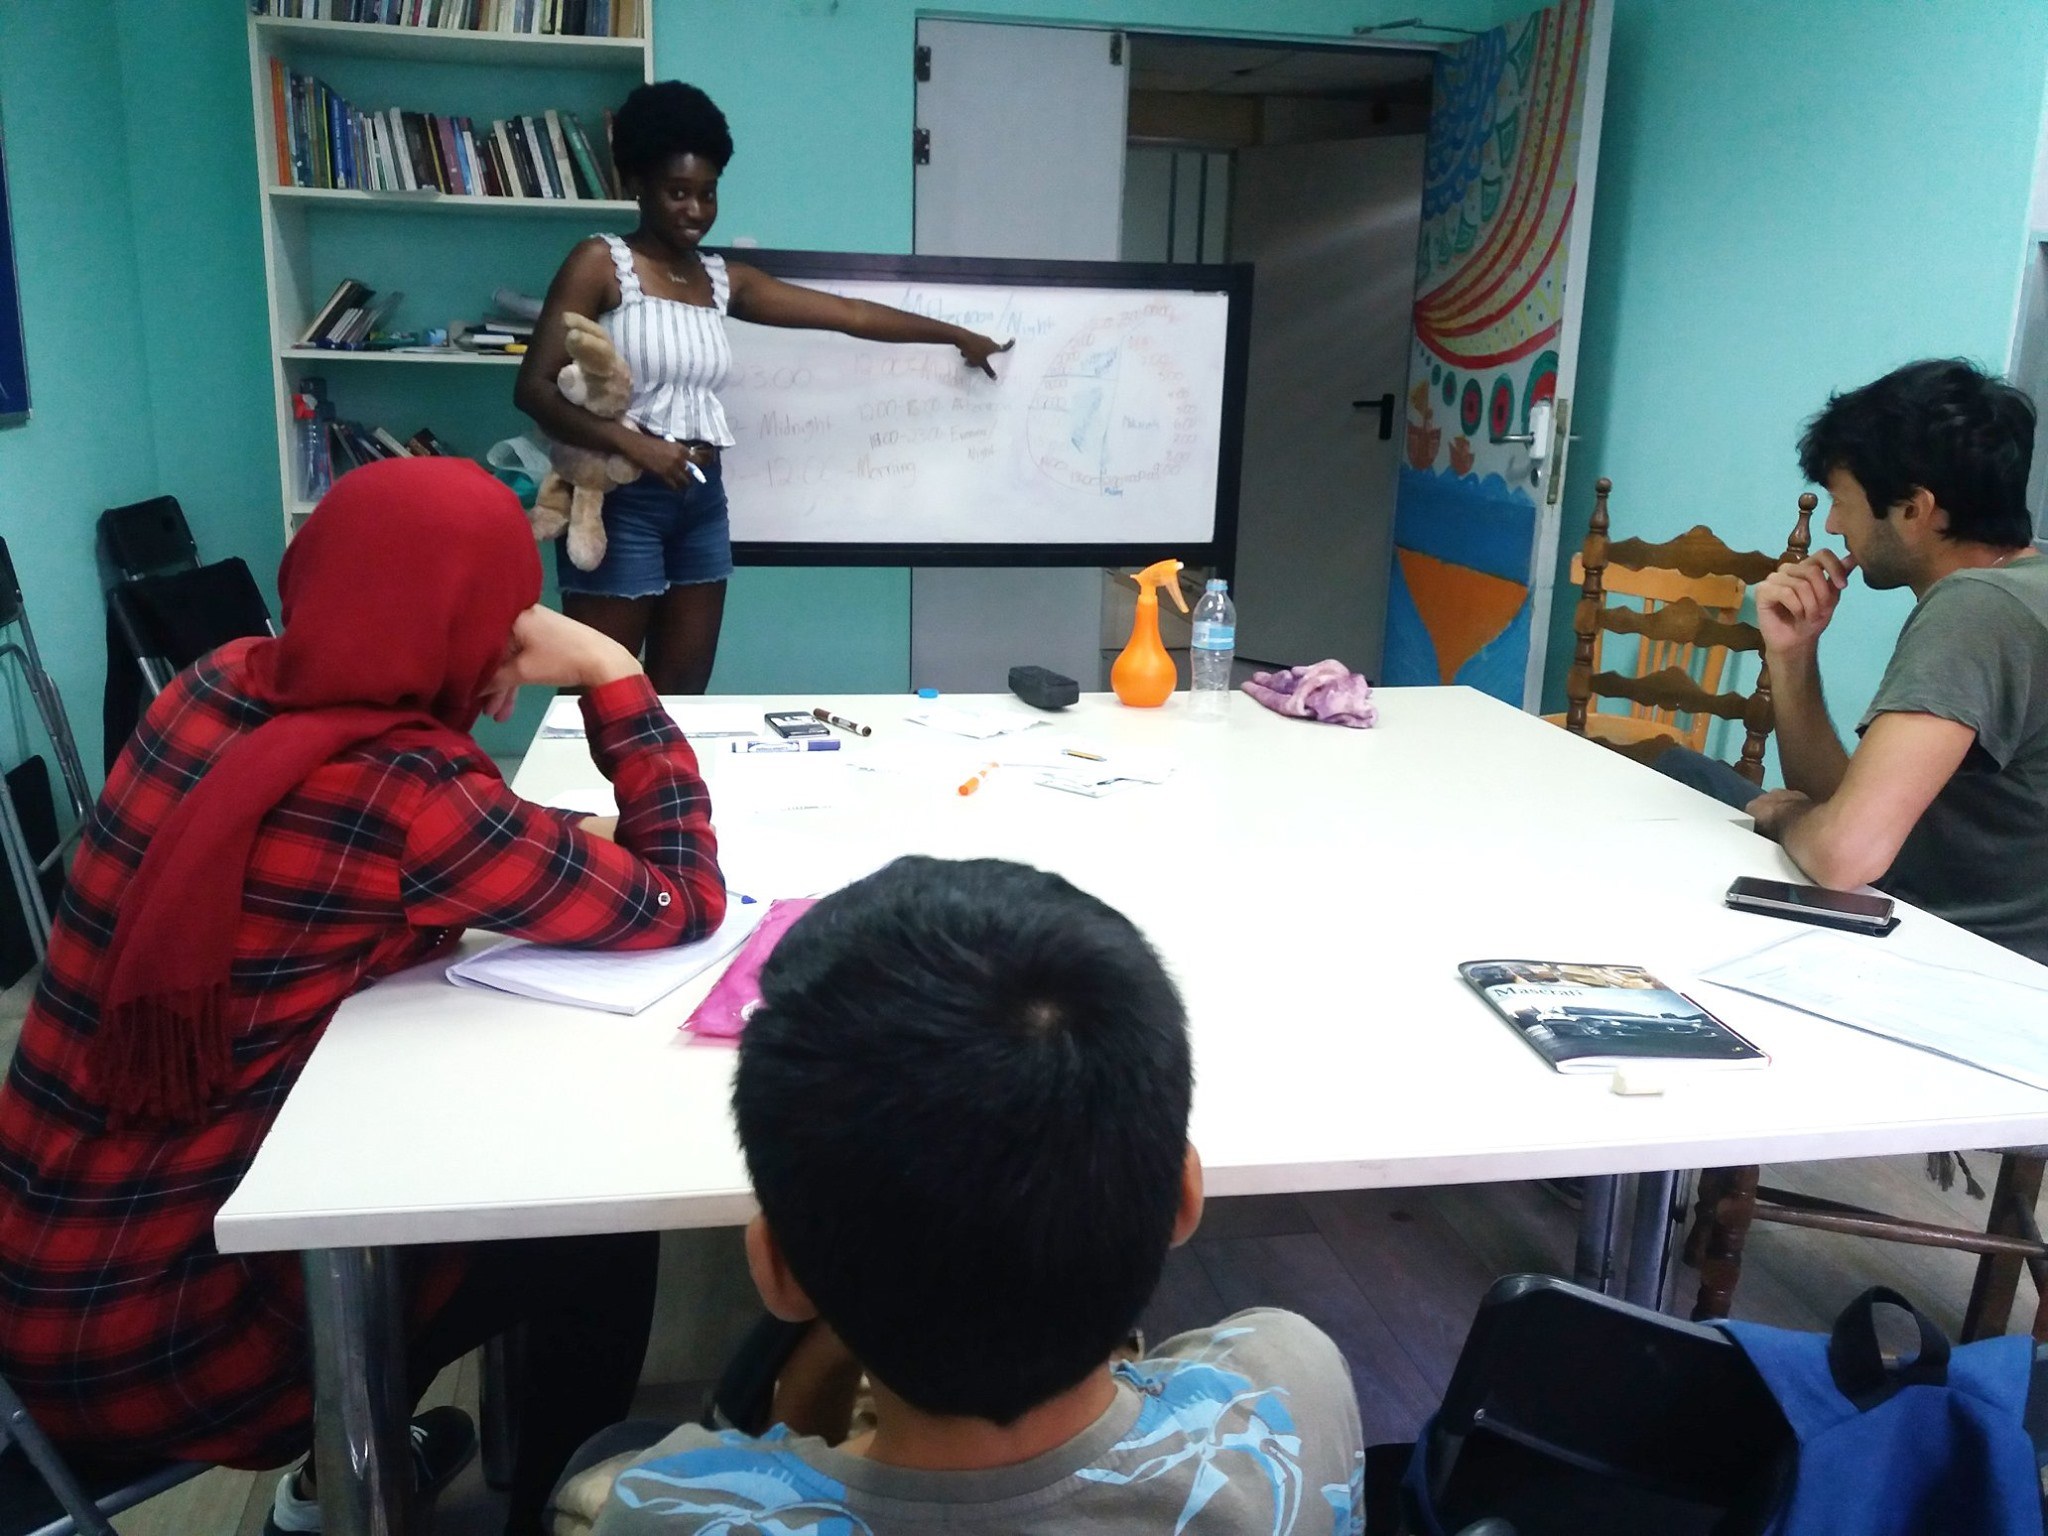 The experience of an american student volunteering in Welcommon Hostel teaching english to refugees